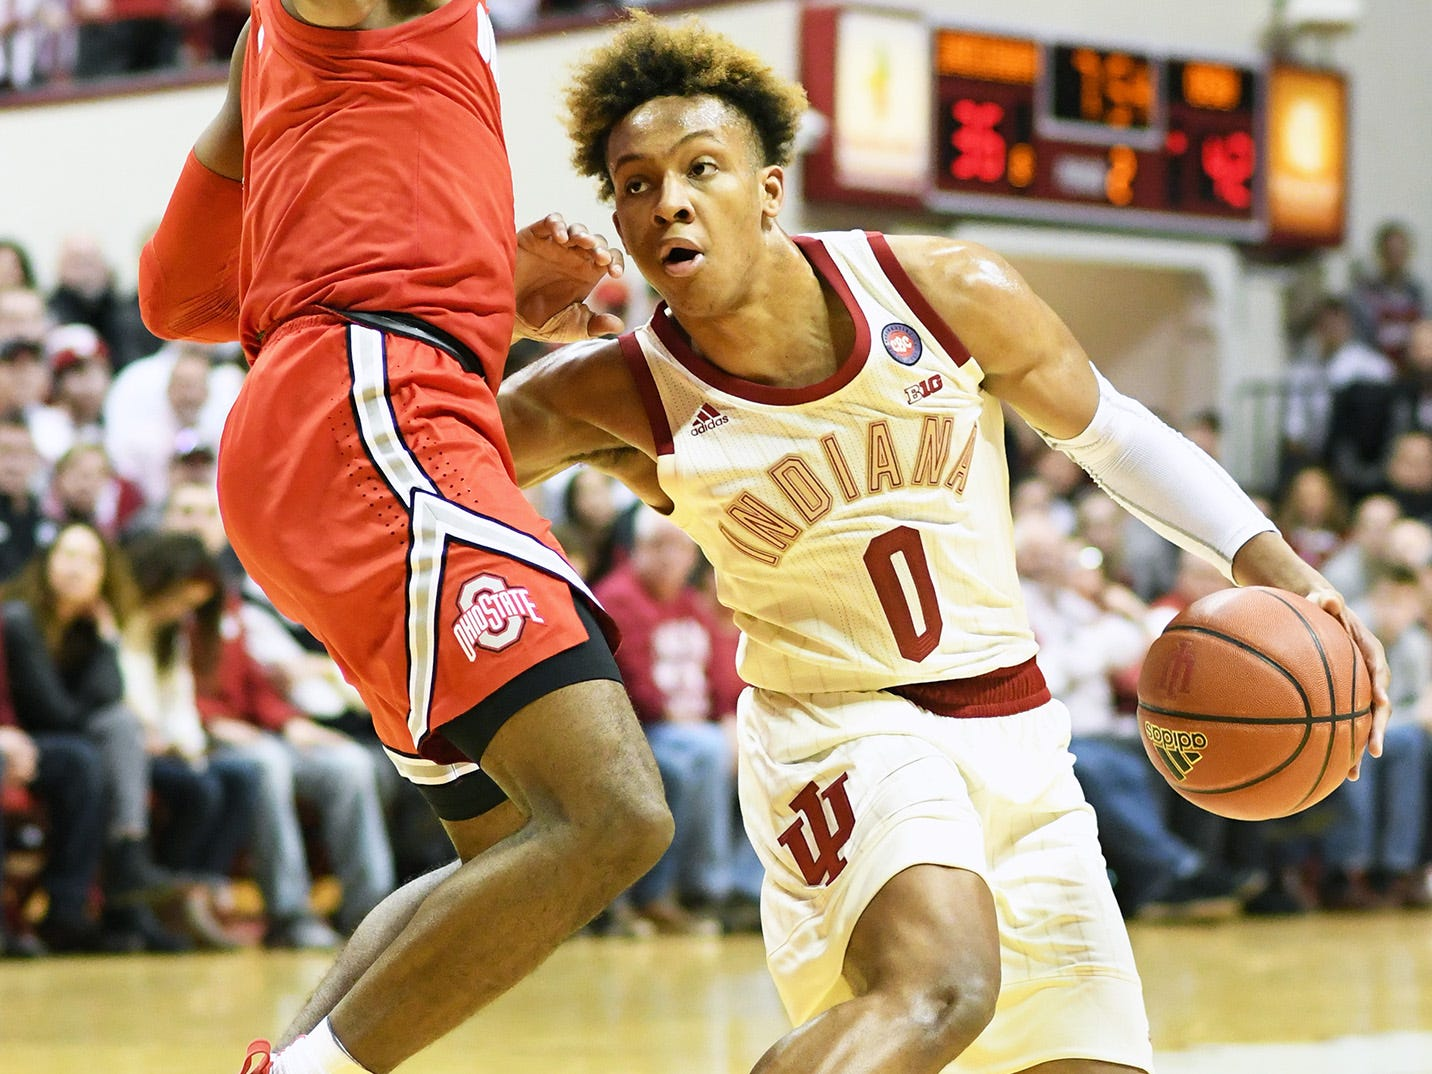 Indiana Hoosiers guard Romeo Langford (0) dribbles the ball during the game against Ohio State at Simon Skjodt Assembly Hall in Bloomington Ind., on Sunday, Feb. 10, 2019.